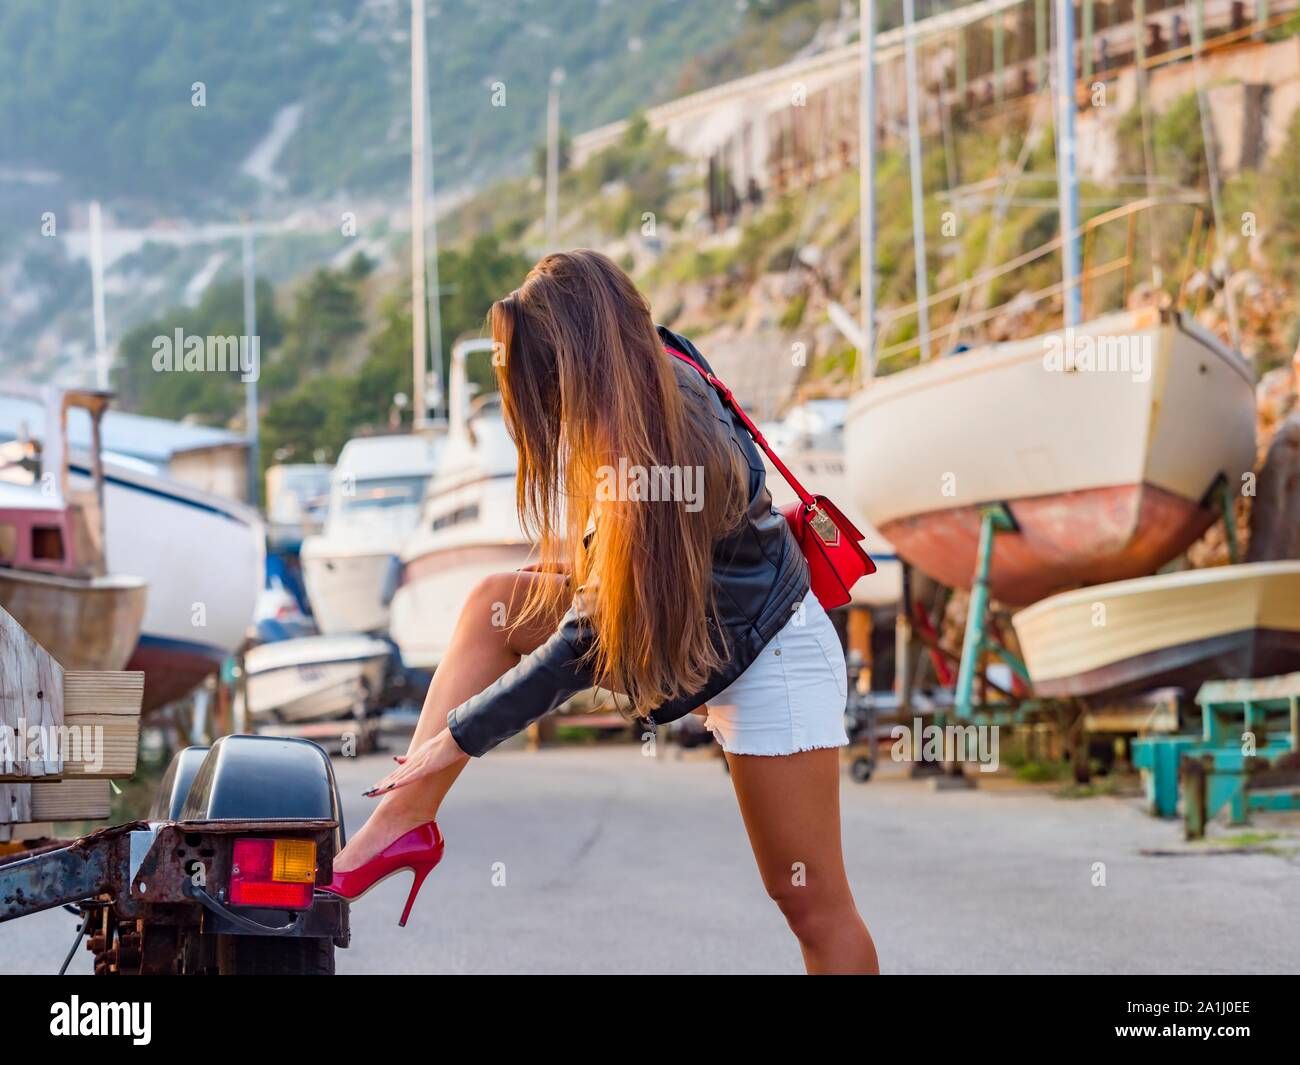 Female admirable leg legs in Red heels wearing White hotpants shorts hot-pants hand touching touch fondle fondling lower leg skin leggy human person Stock Photo